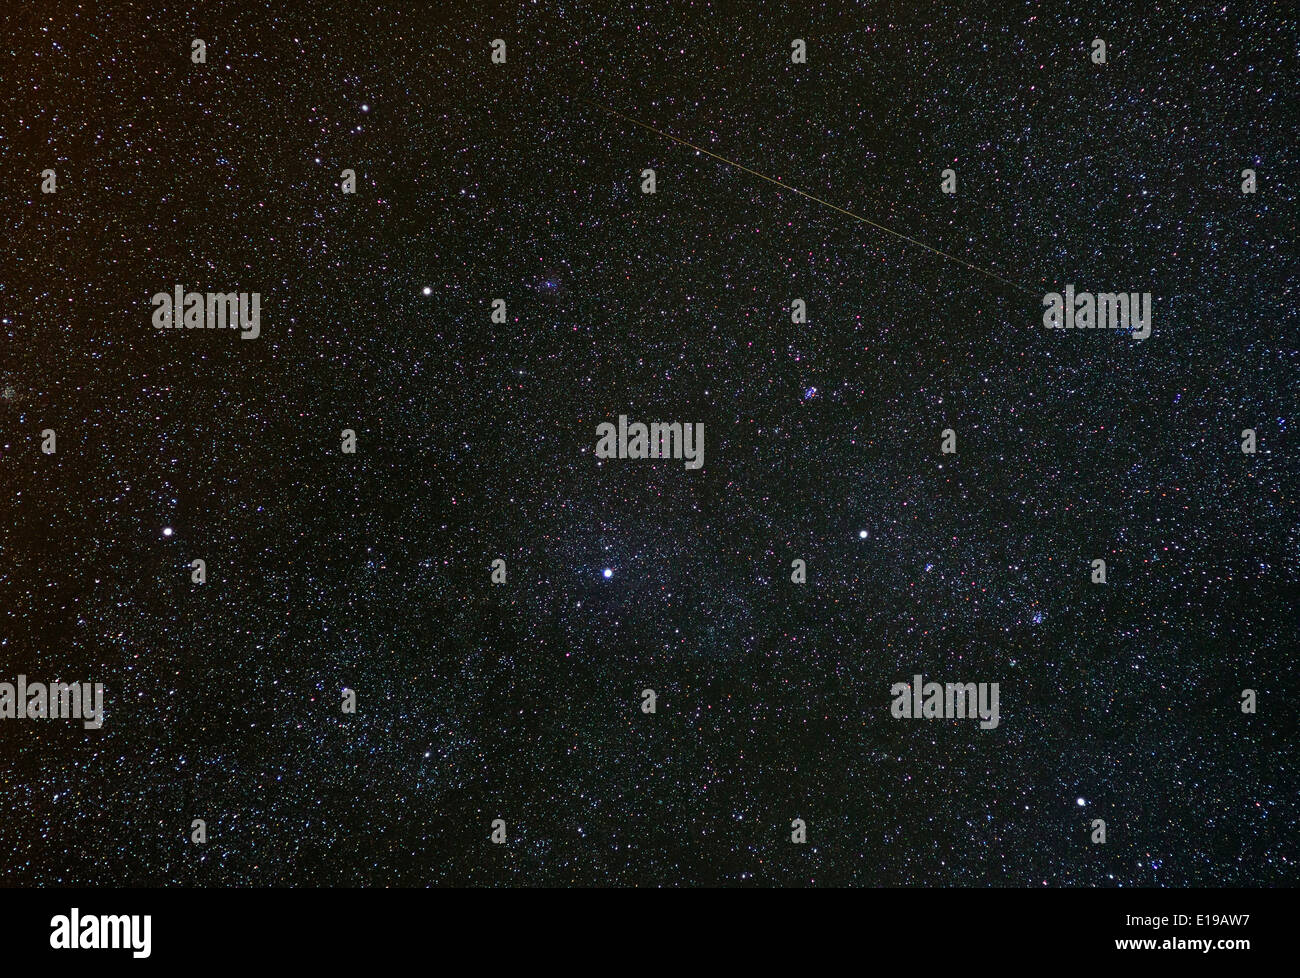 Cassiopeia constellation with shooting star - Stock Image